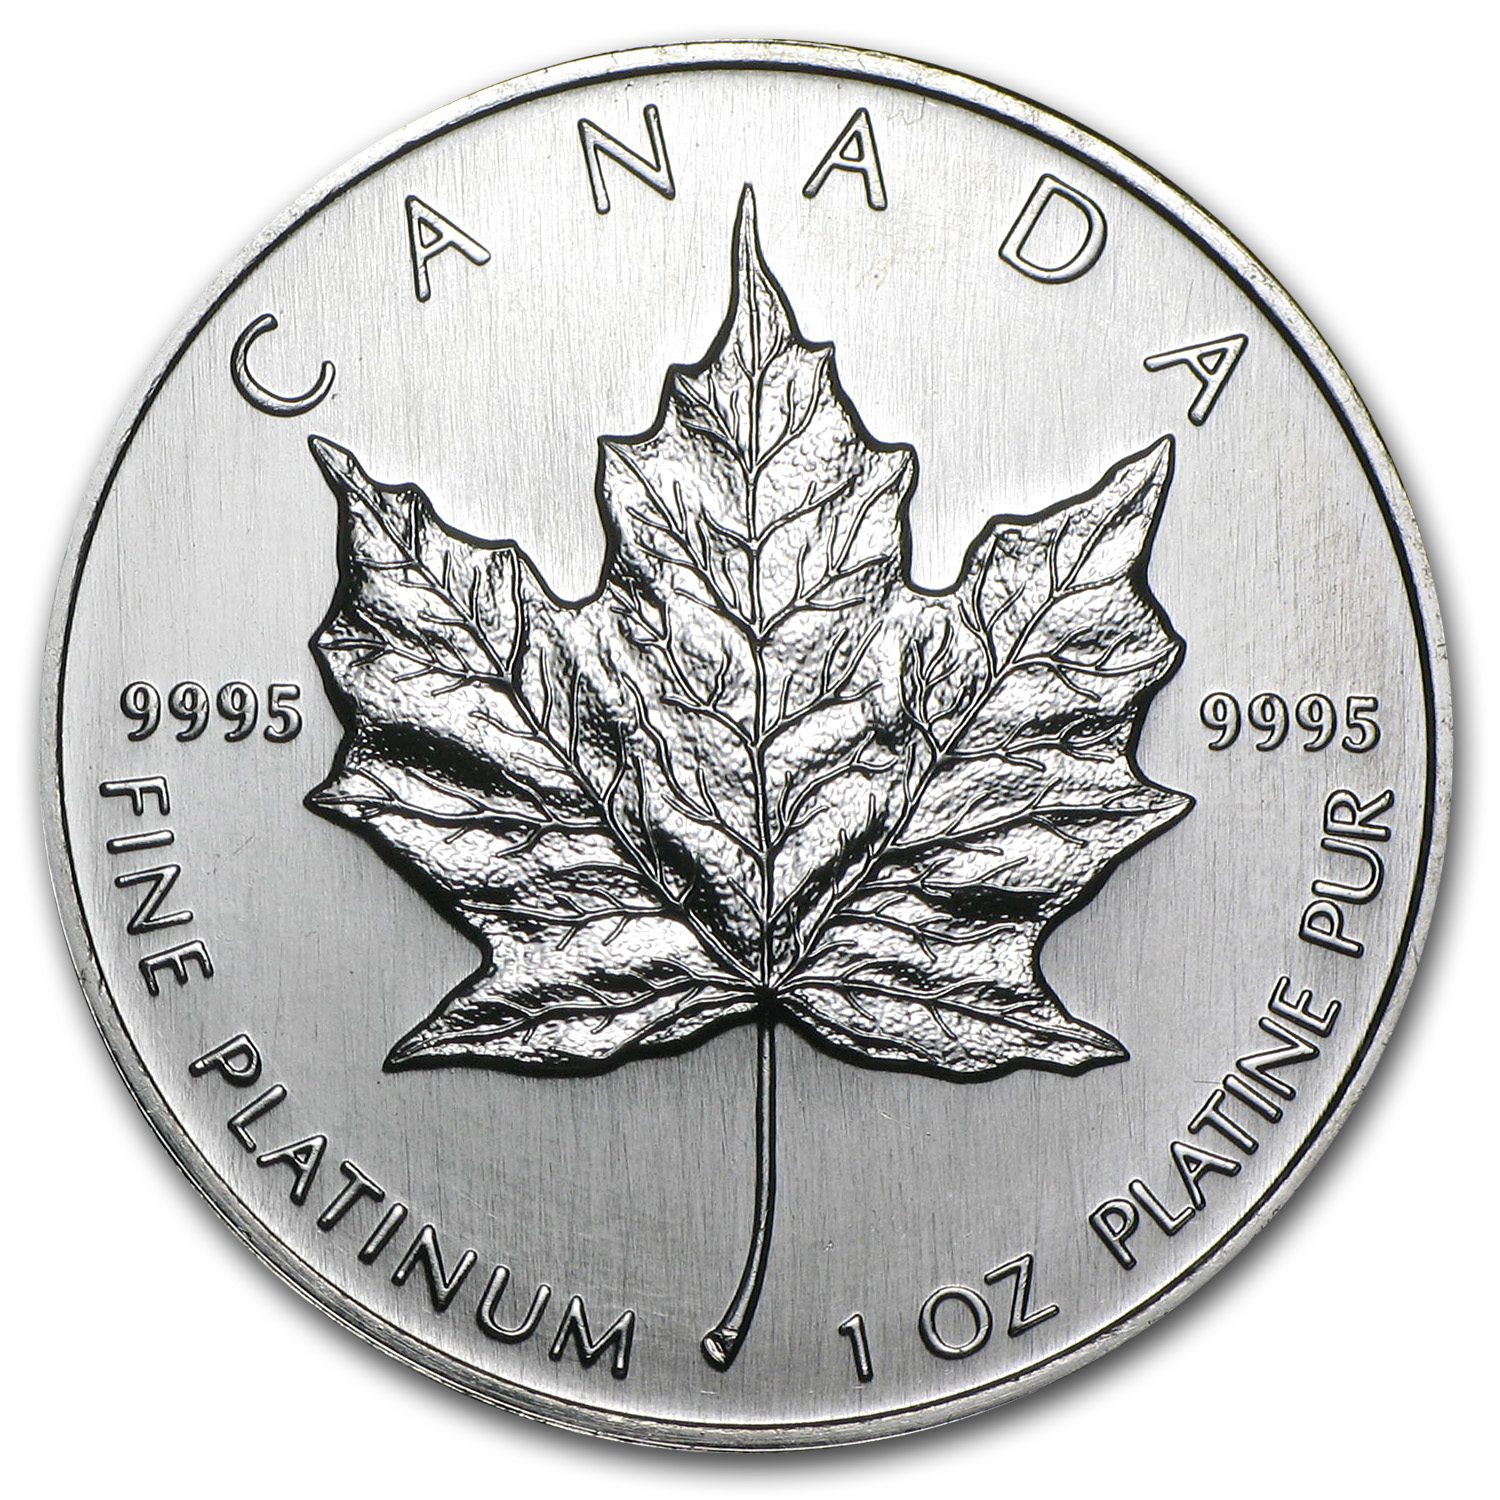 1997 Canada 1 oz Platinum Maple Leaf BU